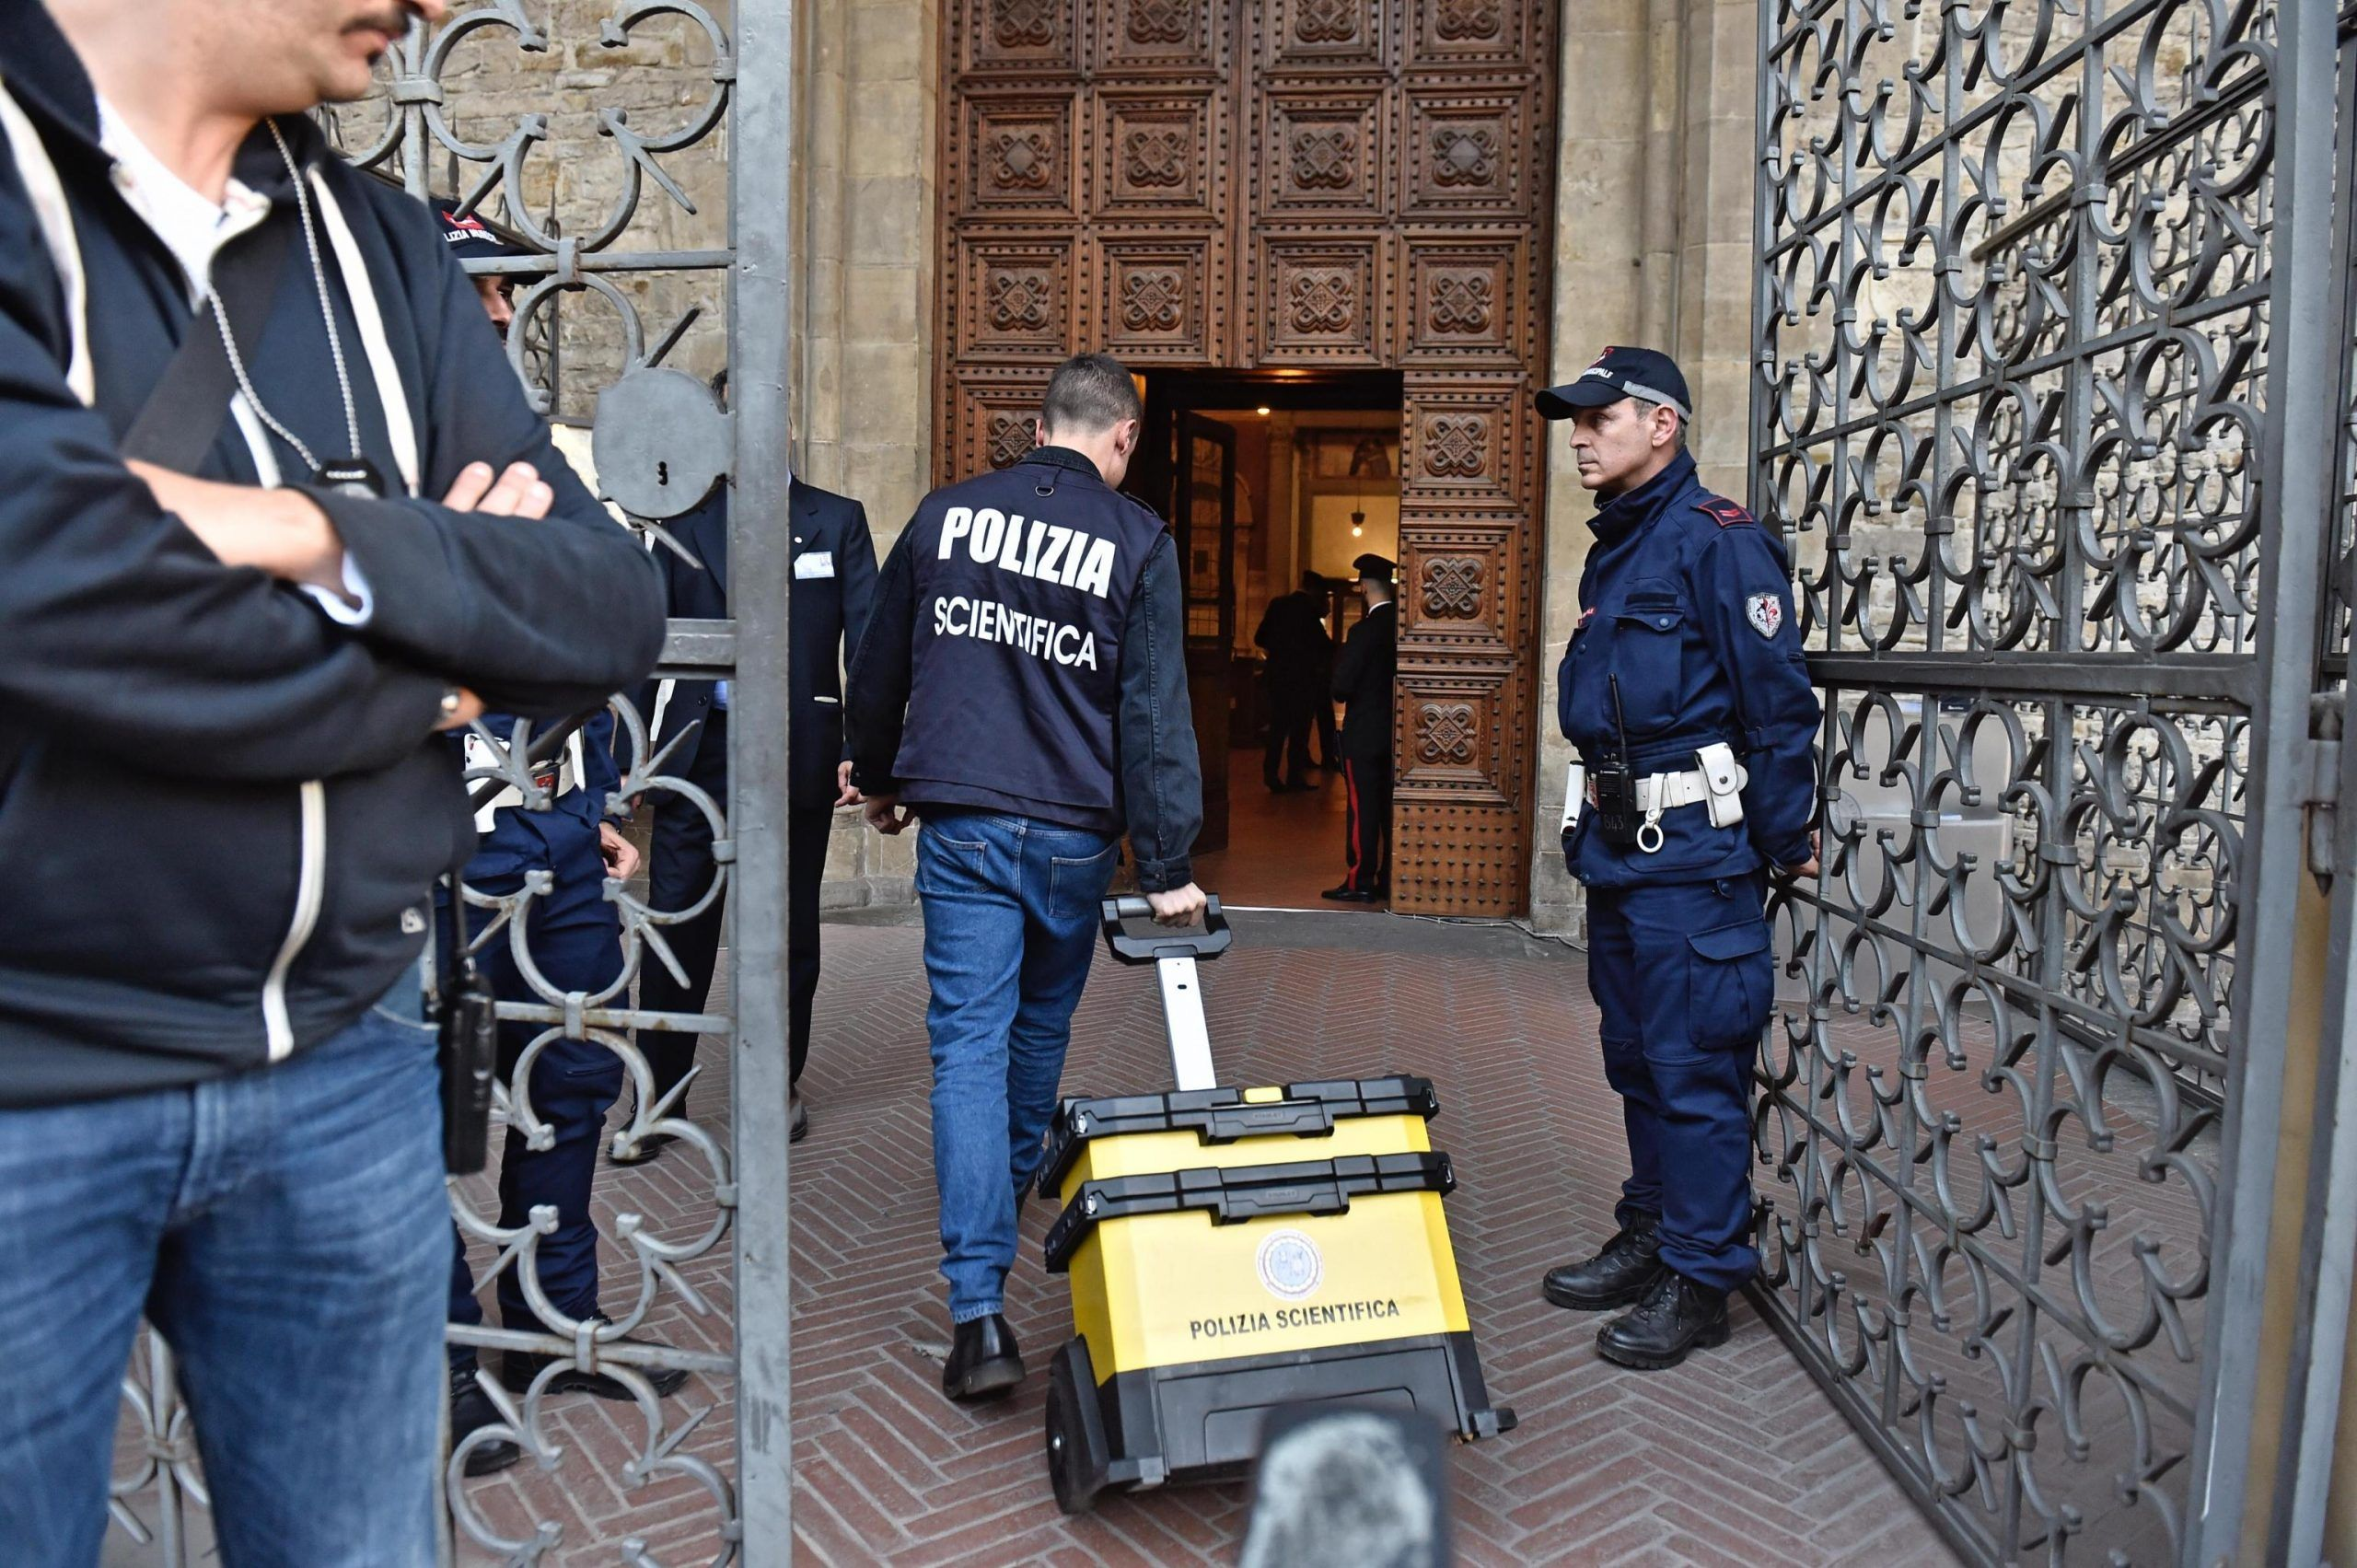 ++ Tourist killed by falling stone in Florence basilica ++